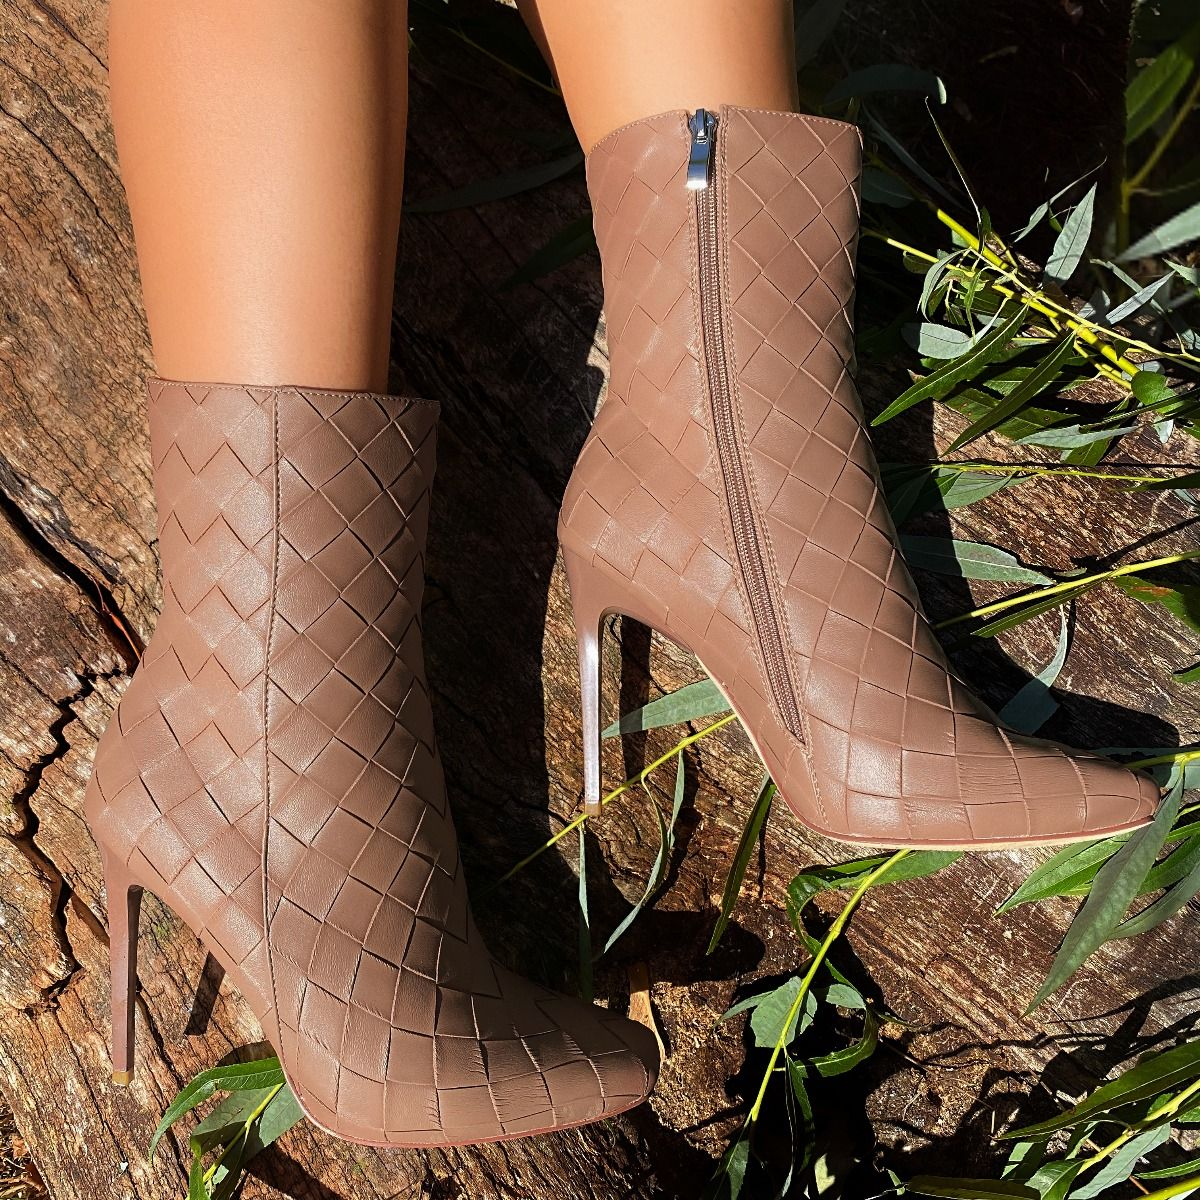 Women Boots PU Leather Zipper Retro Casual Womans Booties Gladiator High Heel Shoes Ladies Fashion Botas Mujer Invierno TW669